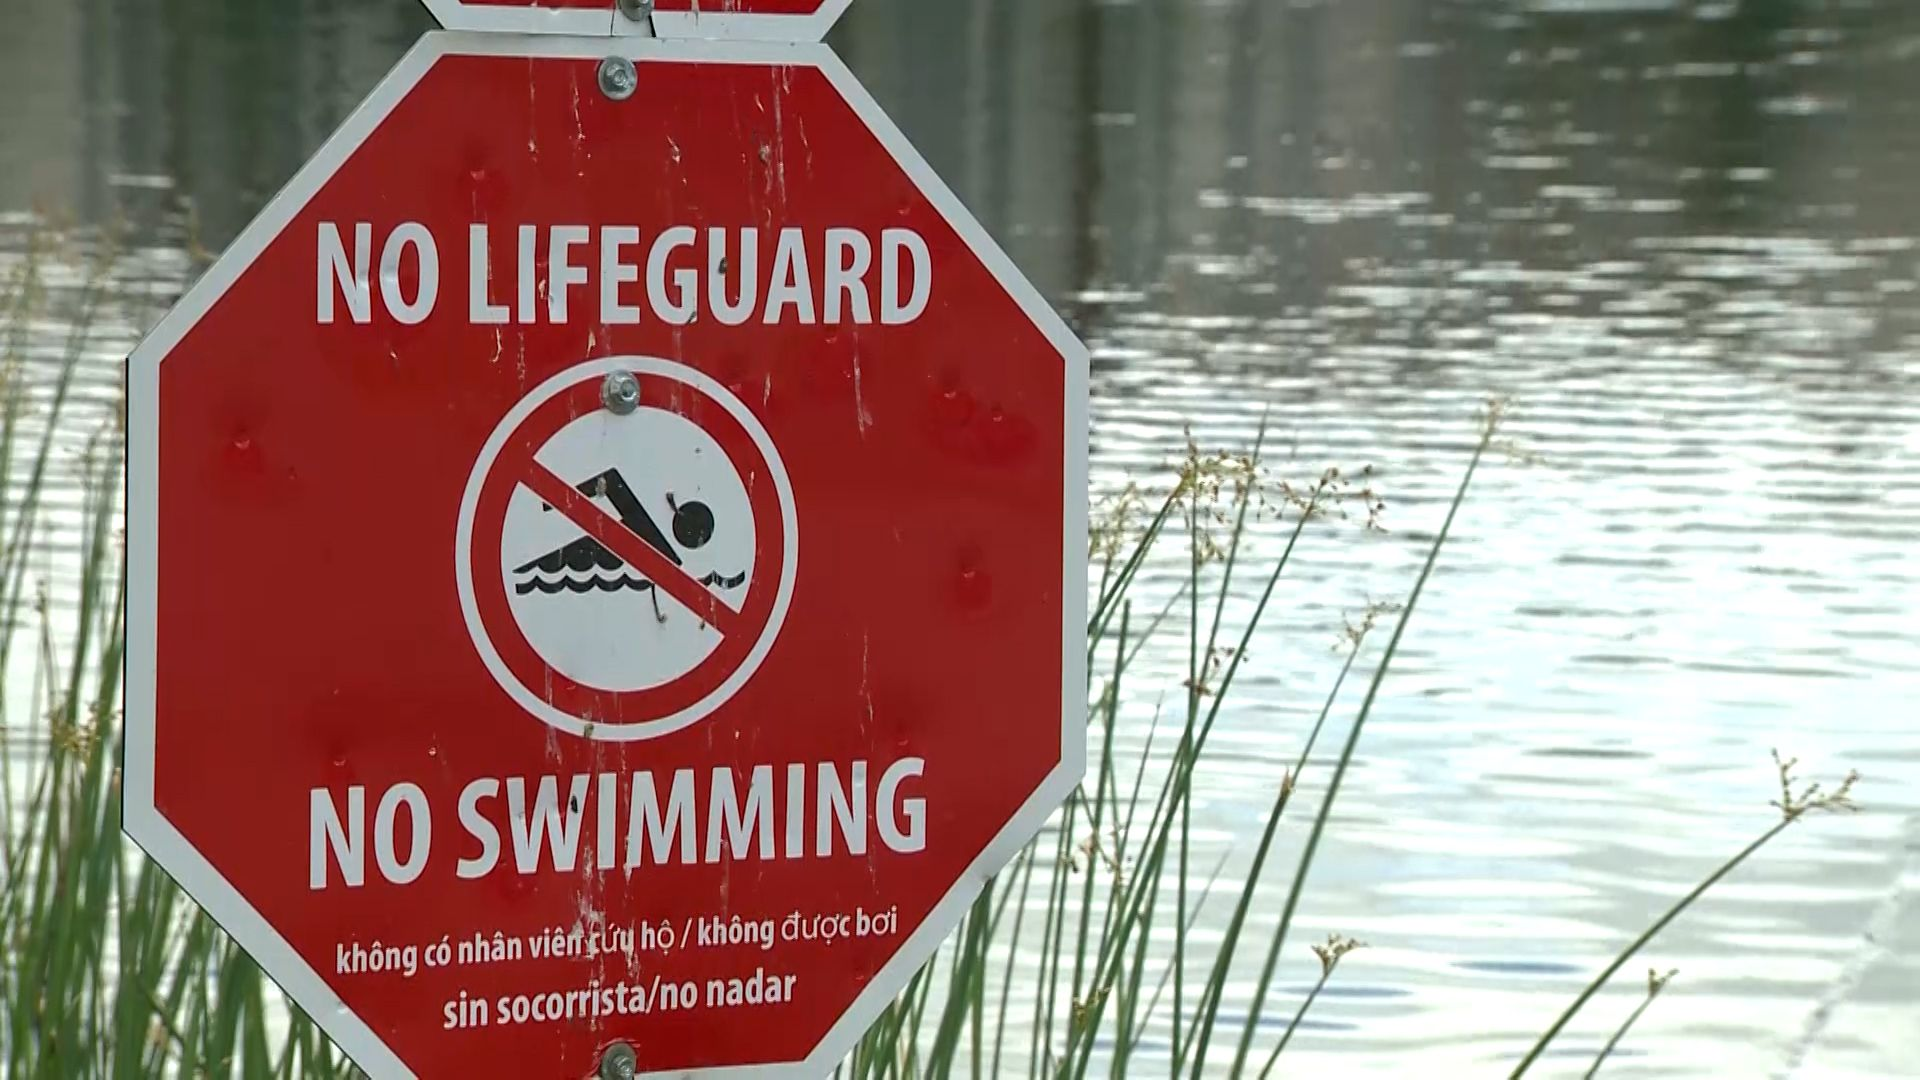 Teenage lifeguard stabbed in Worcester for enforcing rules; 4 people arrested by police